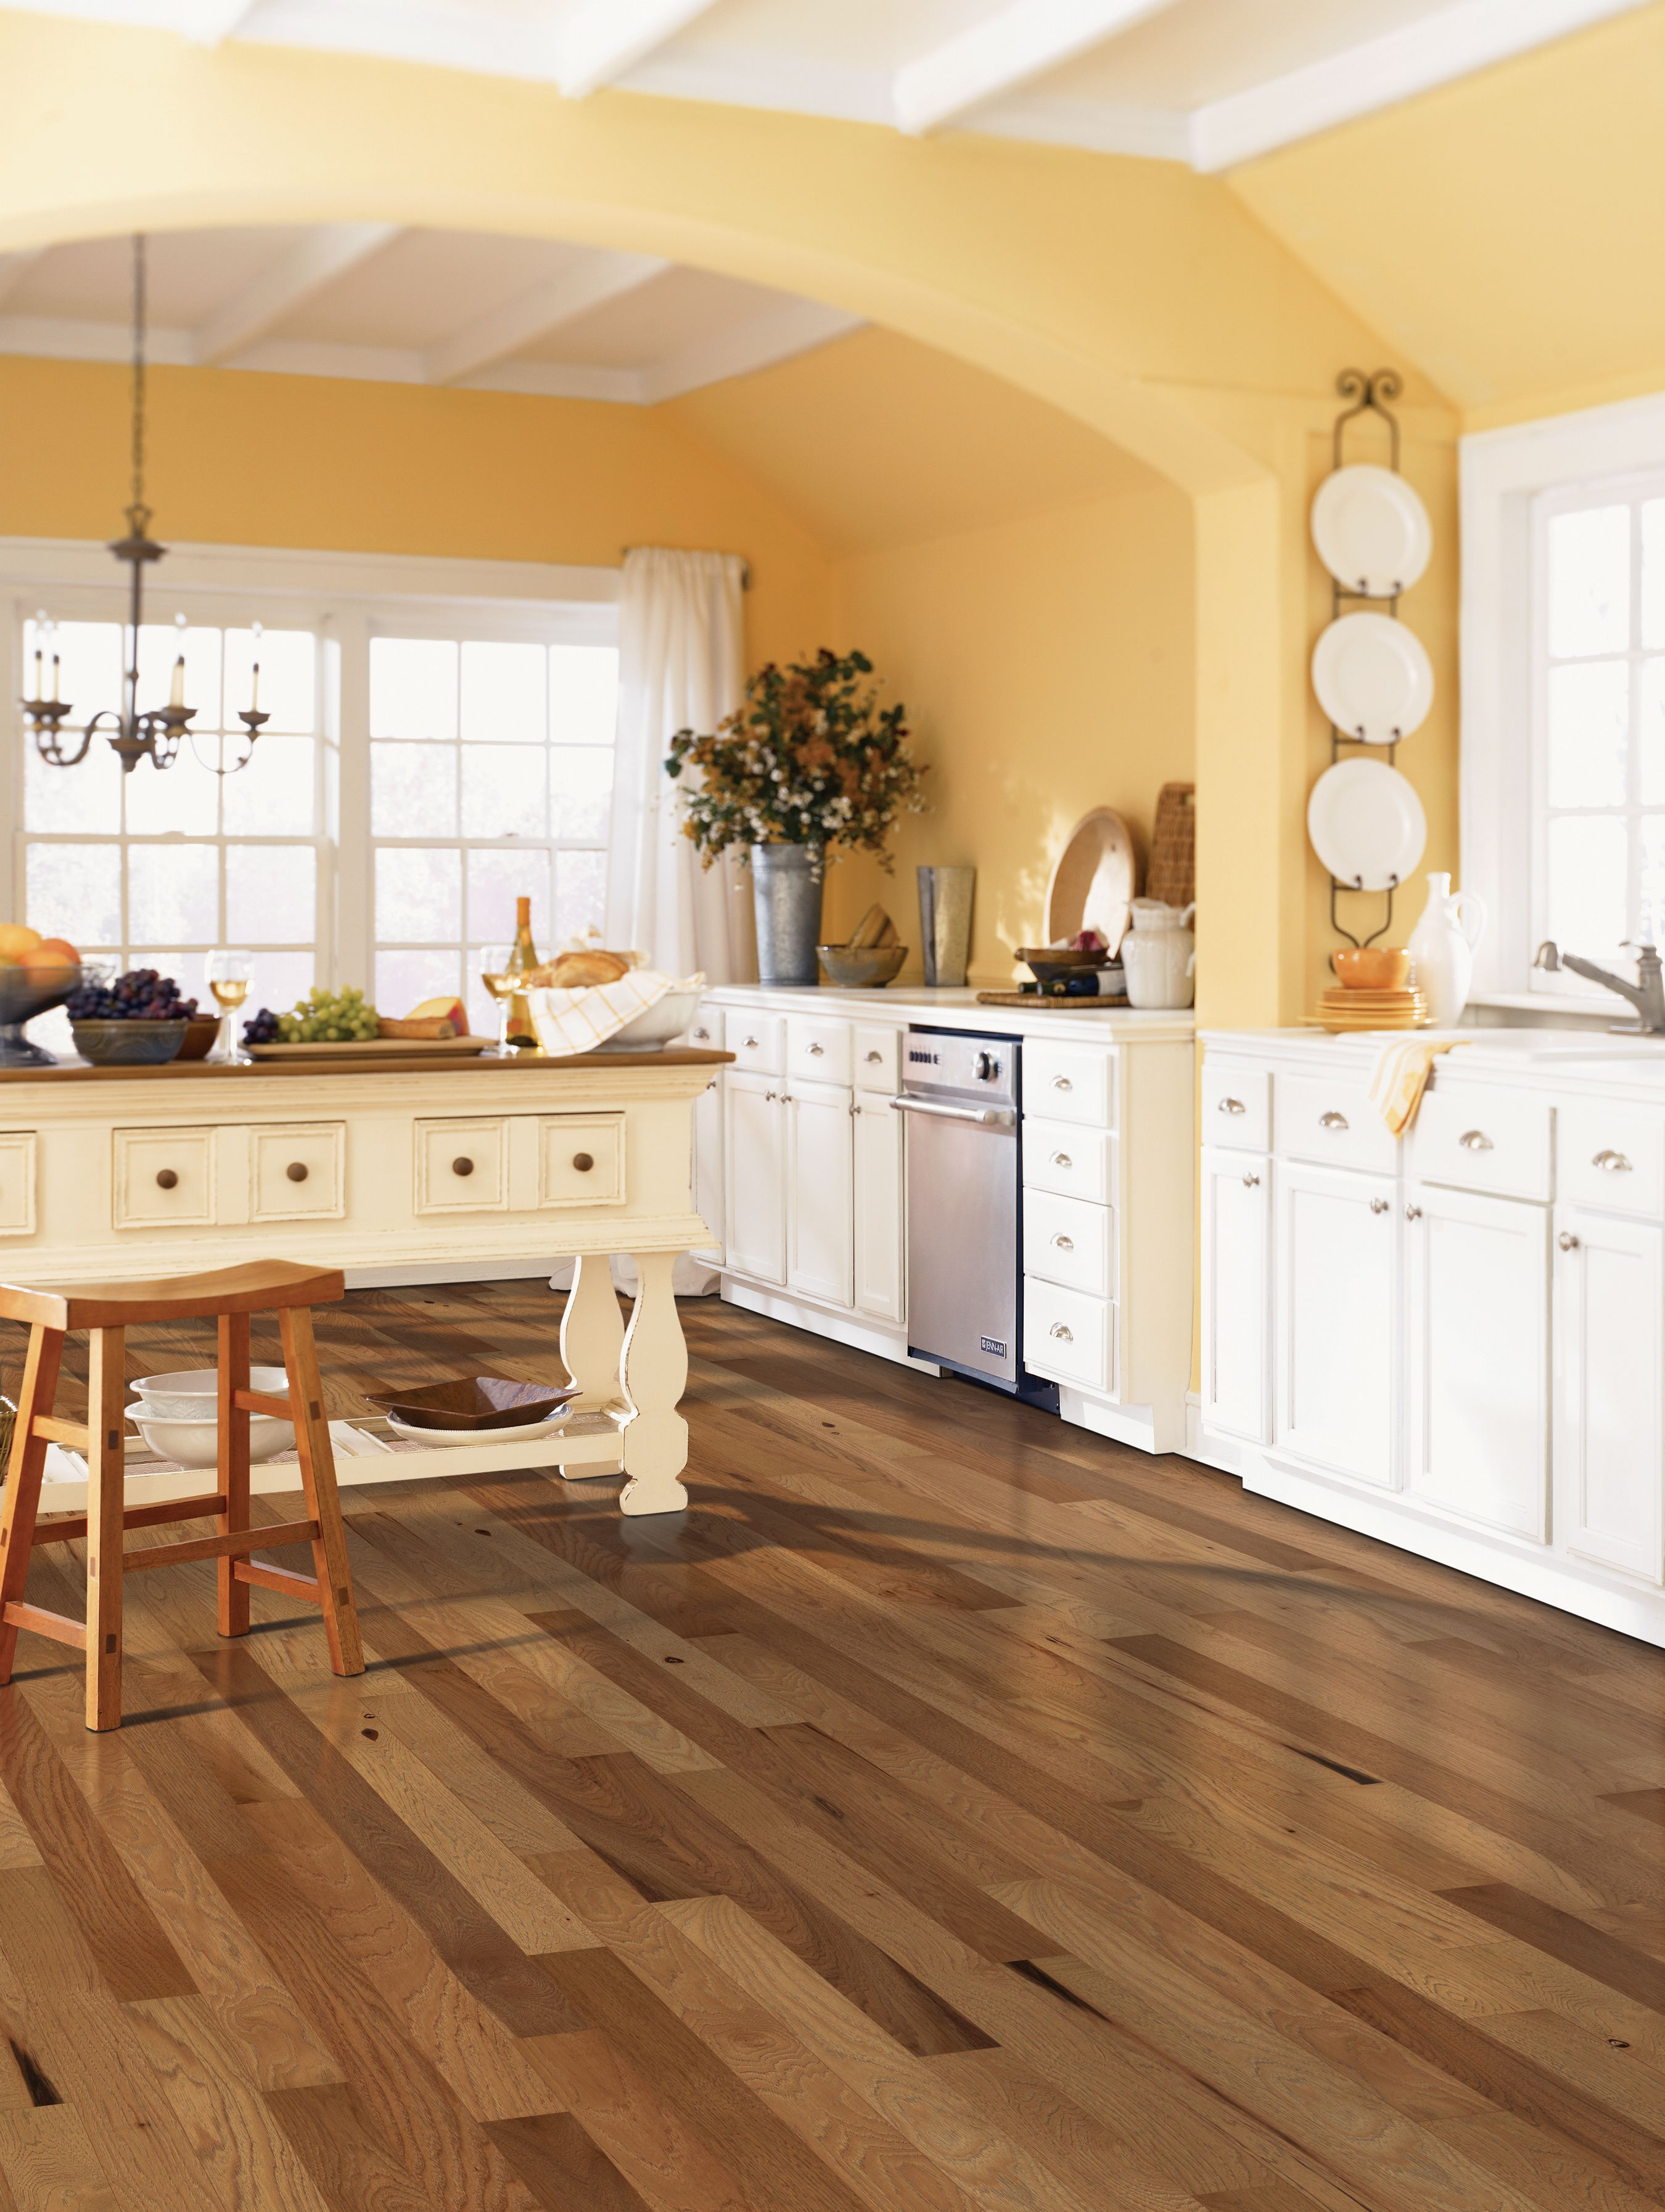 Be Inspired By This Hardwood Floor By Mohawk Dive Into The Design Elements With Luxurious Flooring Available Mohawk Hardwood Flooring Flooring Flooring Store